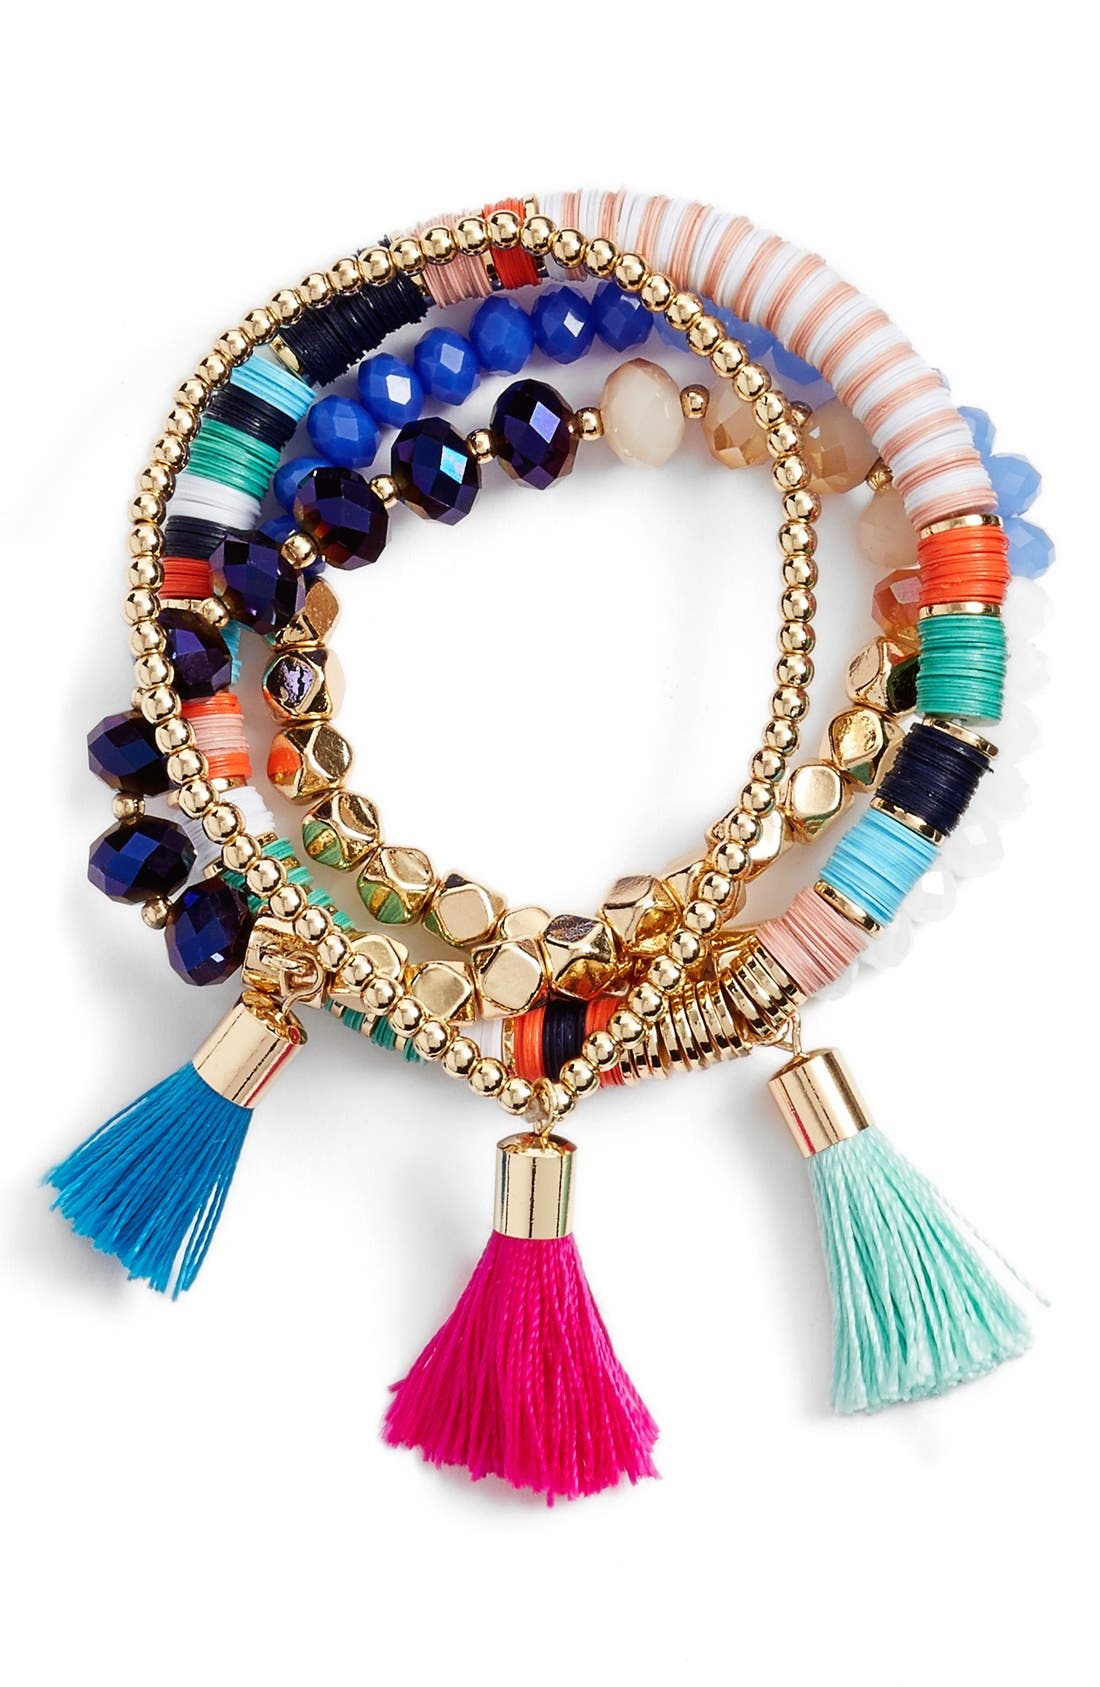 'Antiqua' Beaded Stretch Bracelets,                         Main,                         color, Turquois/ Multi/ Gold